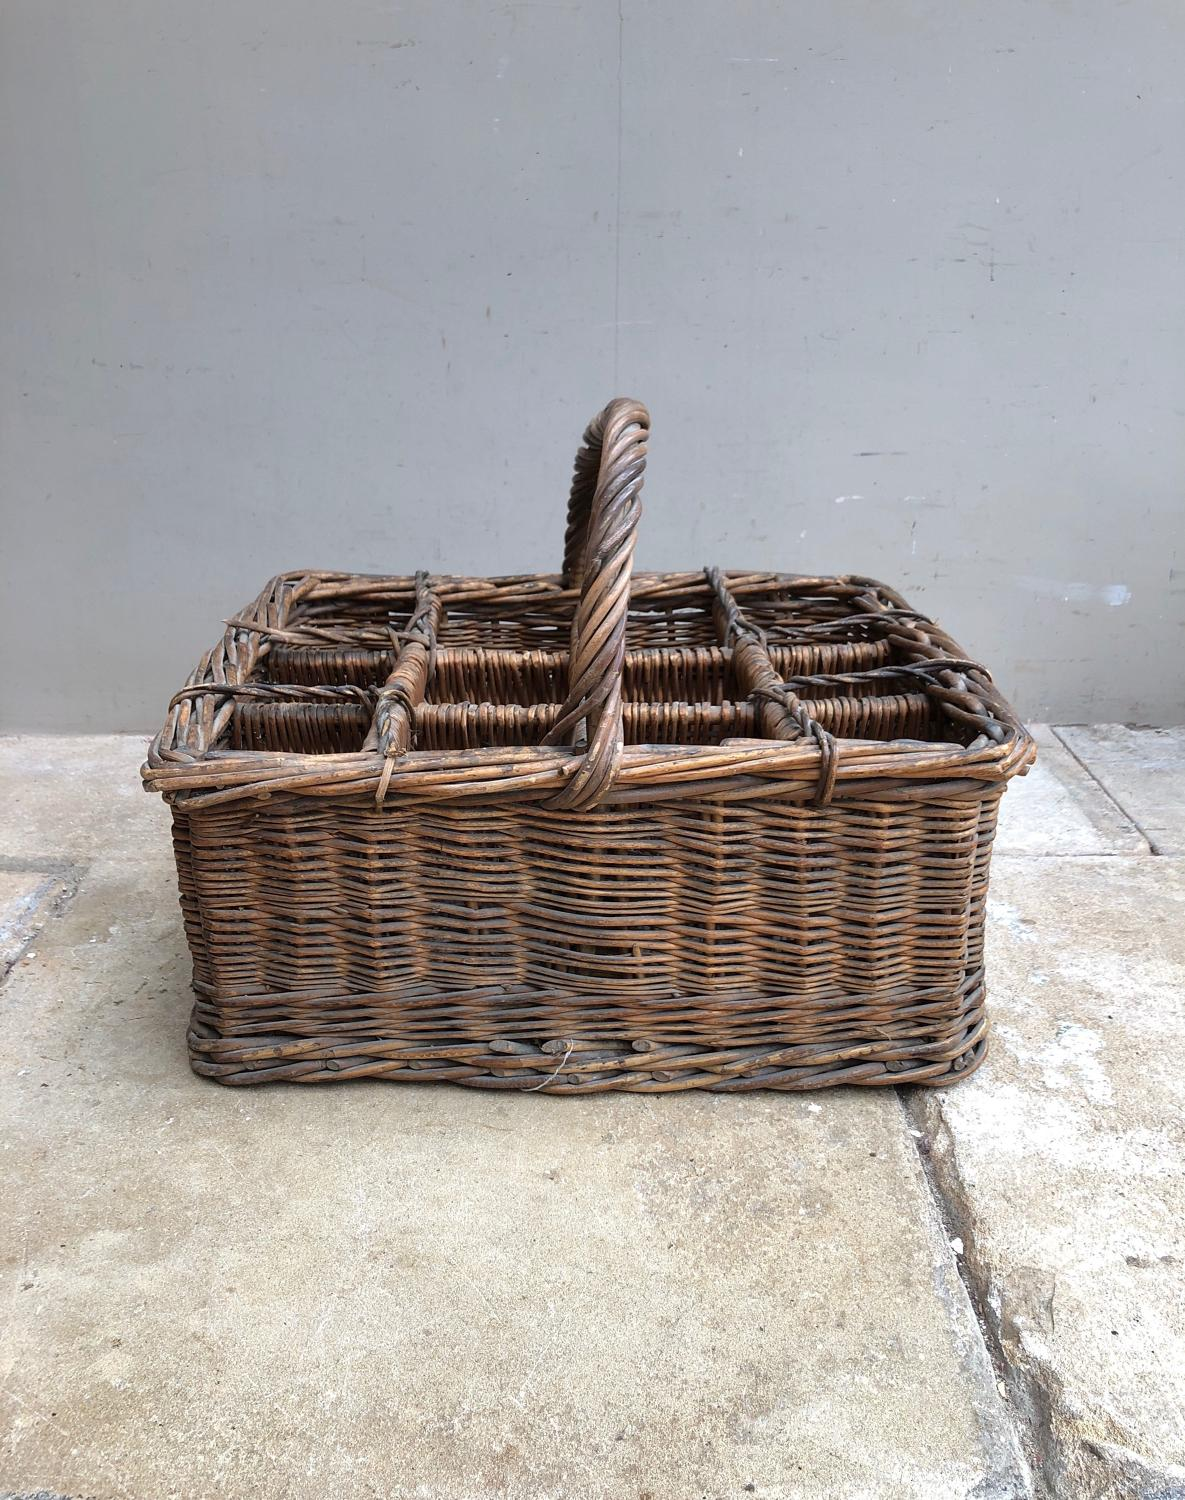 Large Edwardian 12 Champagne Bottle Basket - Superb Condition